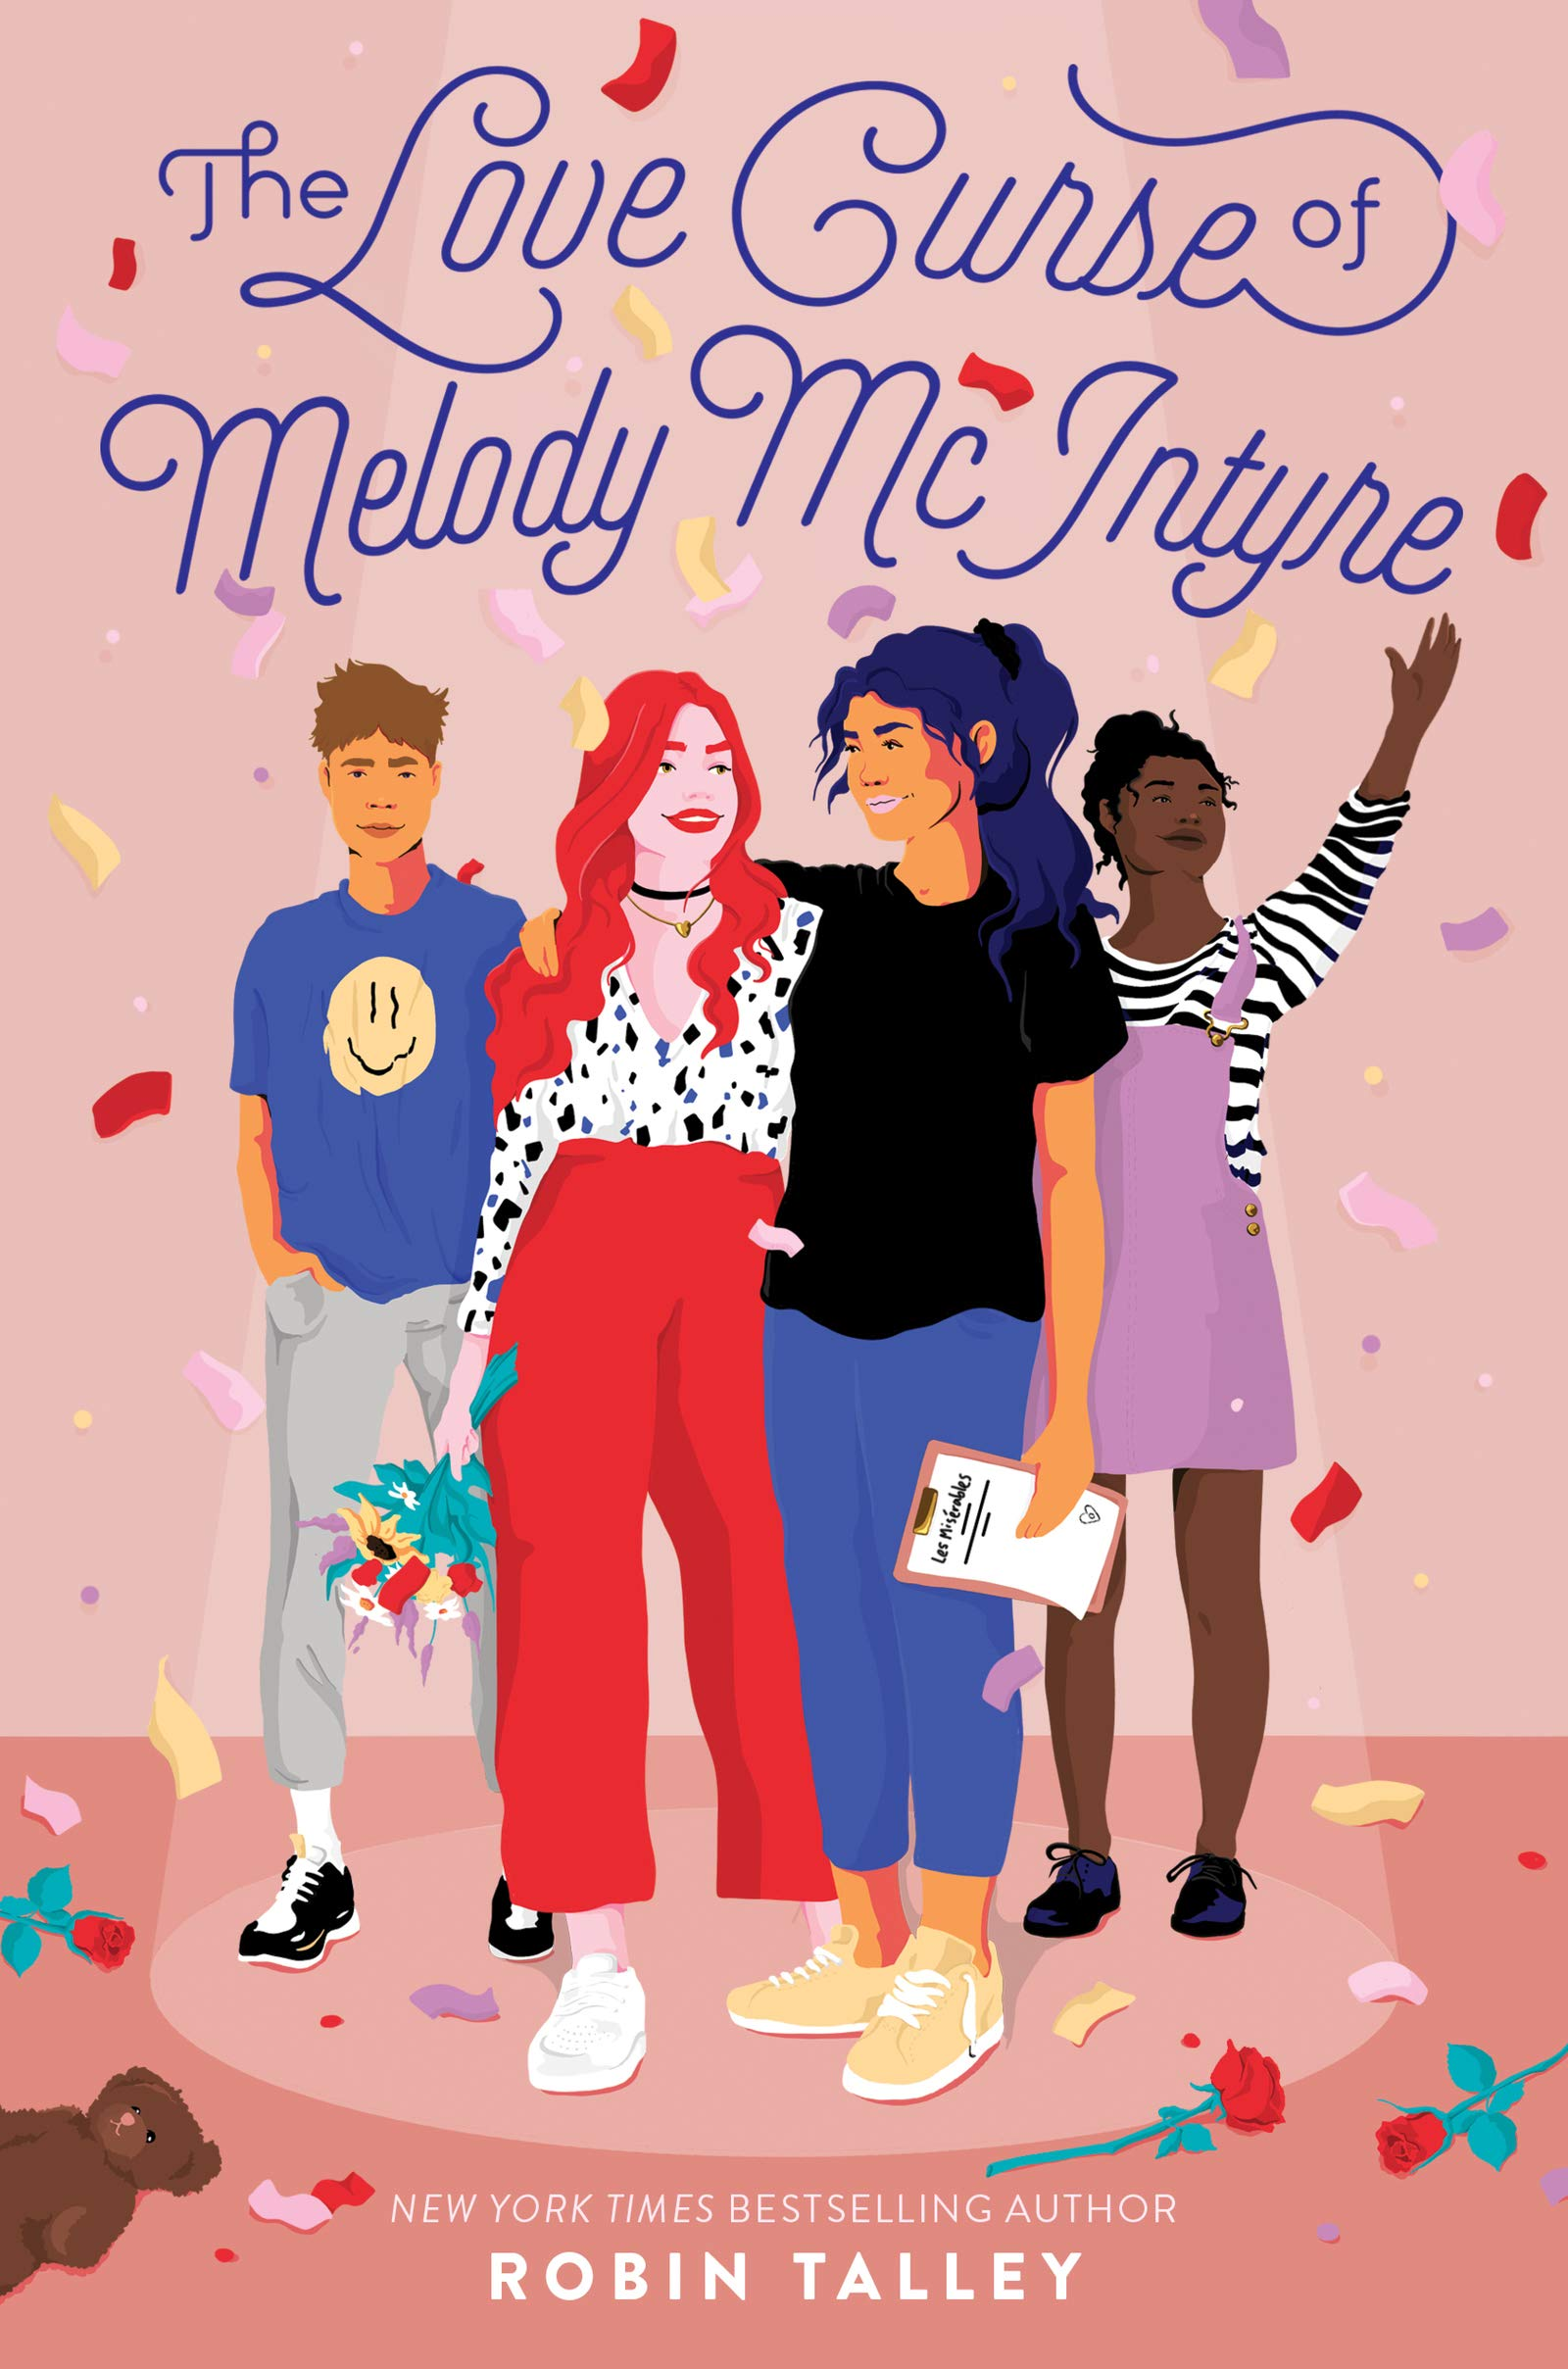 Amazon.com: The Love Curse of Melody McIntyre (9780062409263): Talley,  Robin: Books